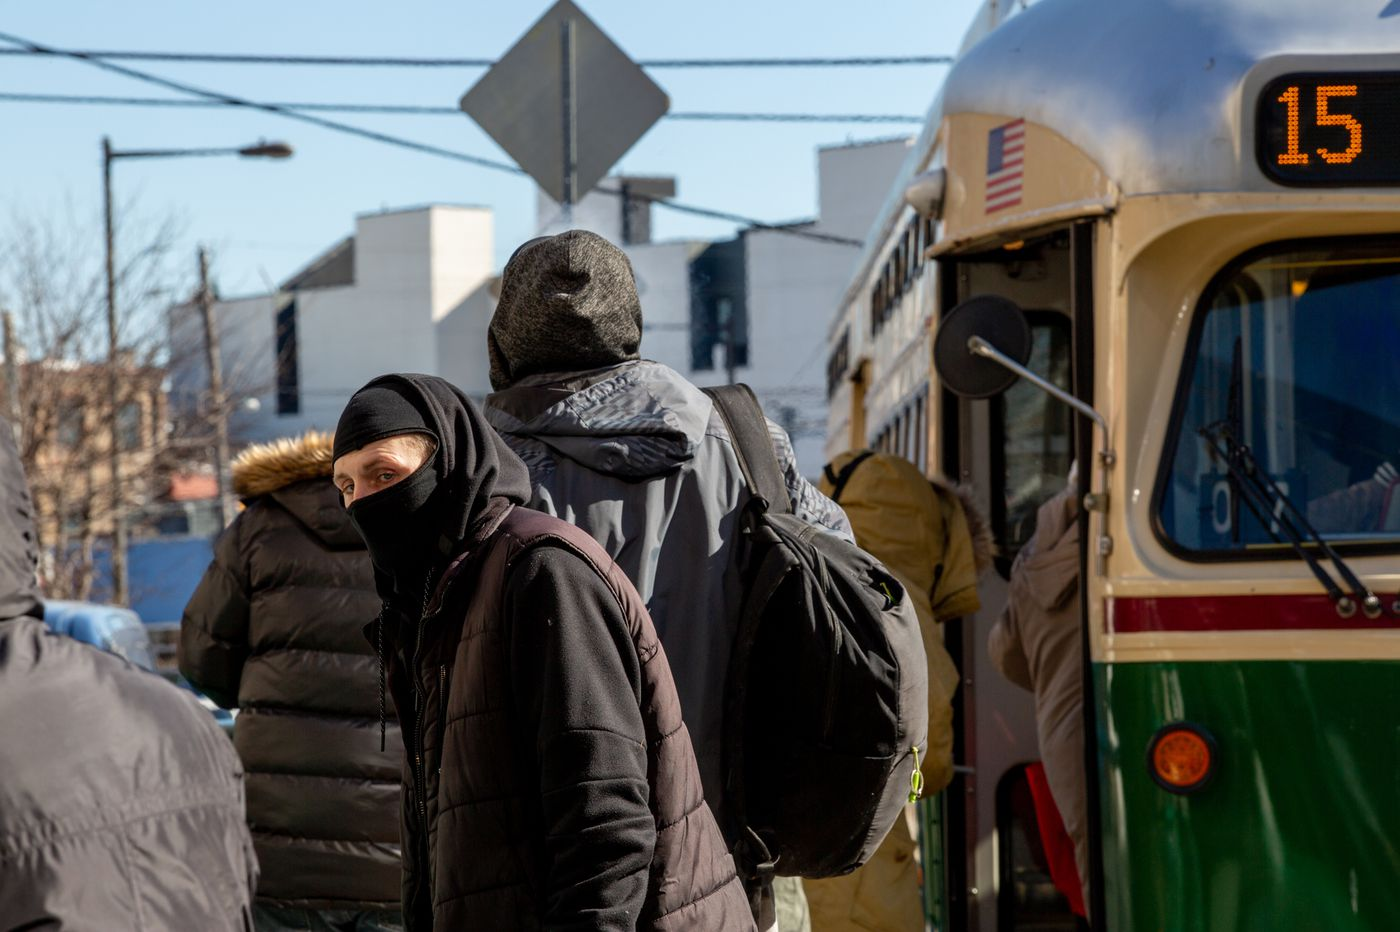 SEPTA urged to 'Fix the 15' and improve communication as historic trolley line gets bus service